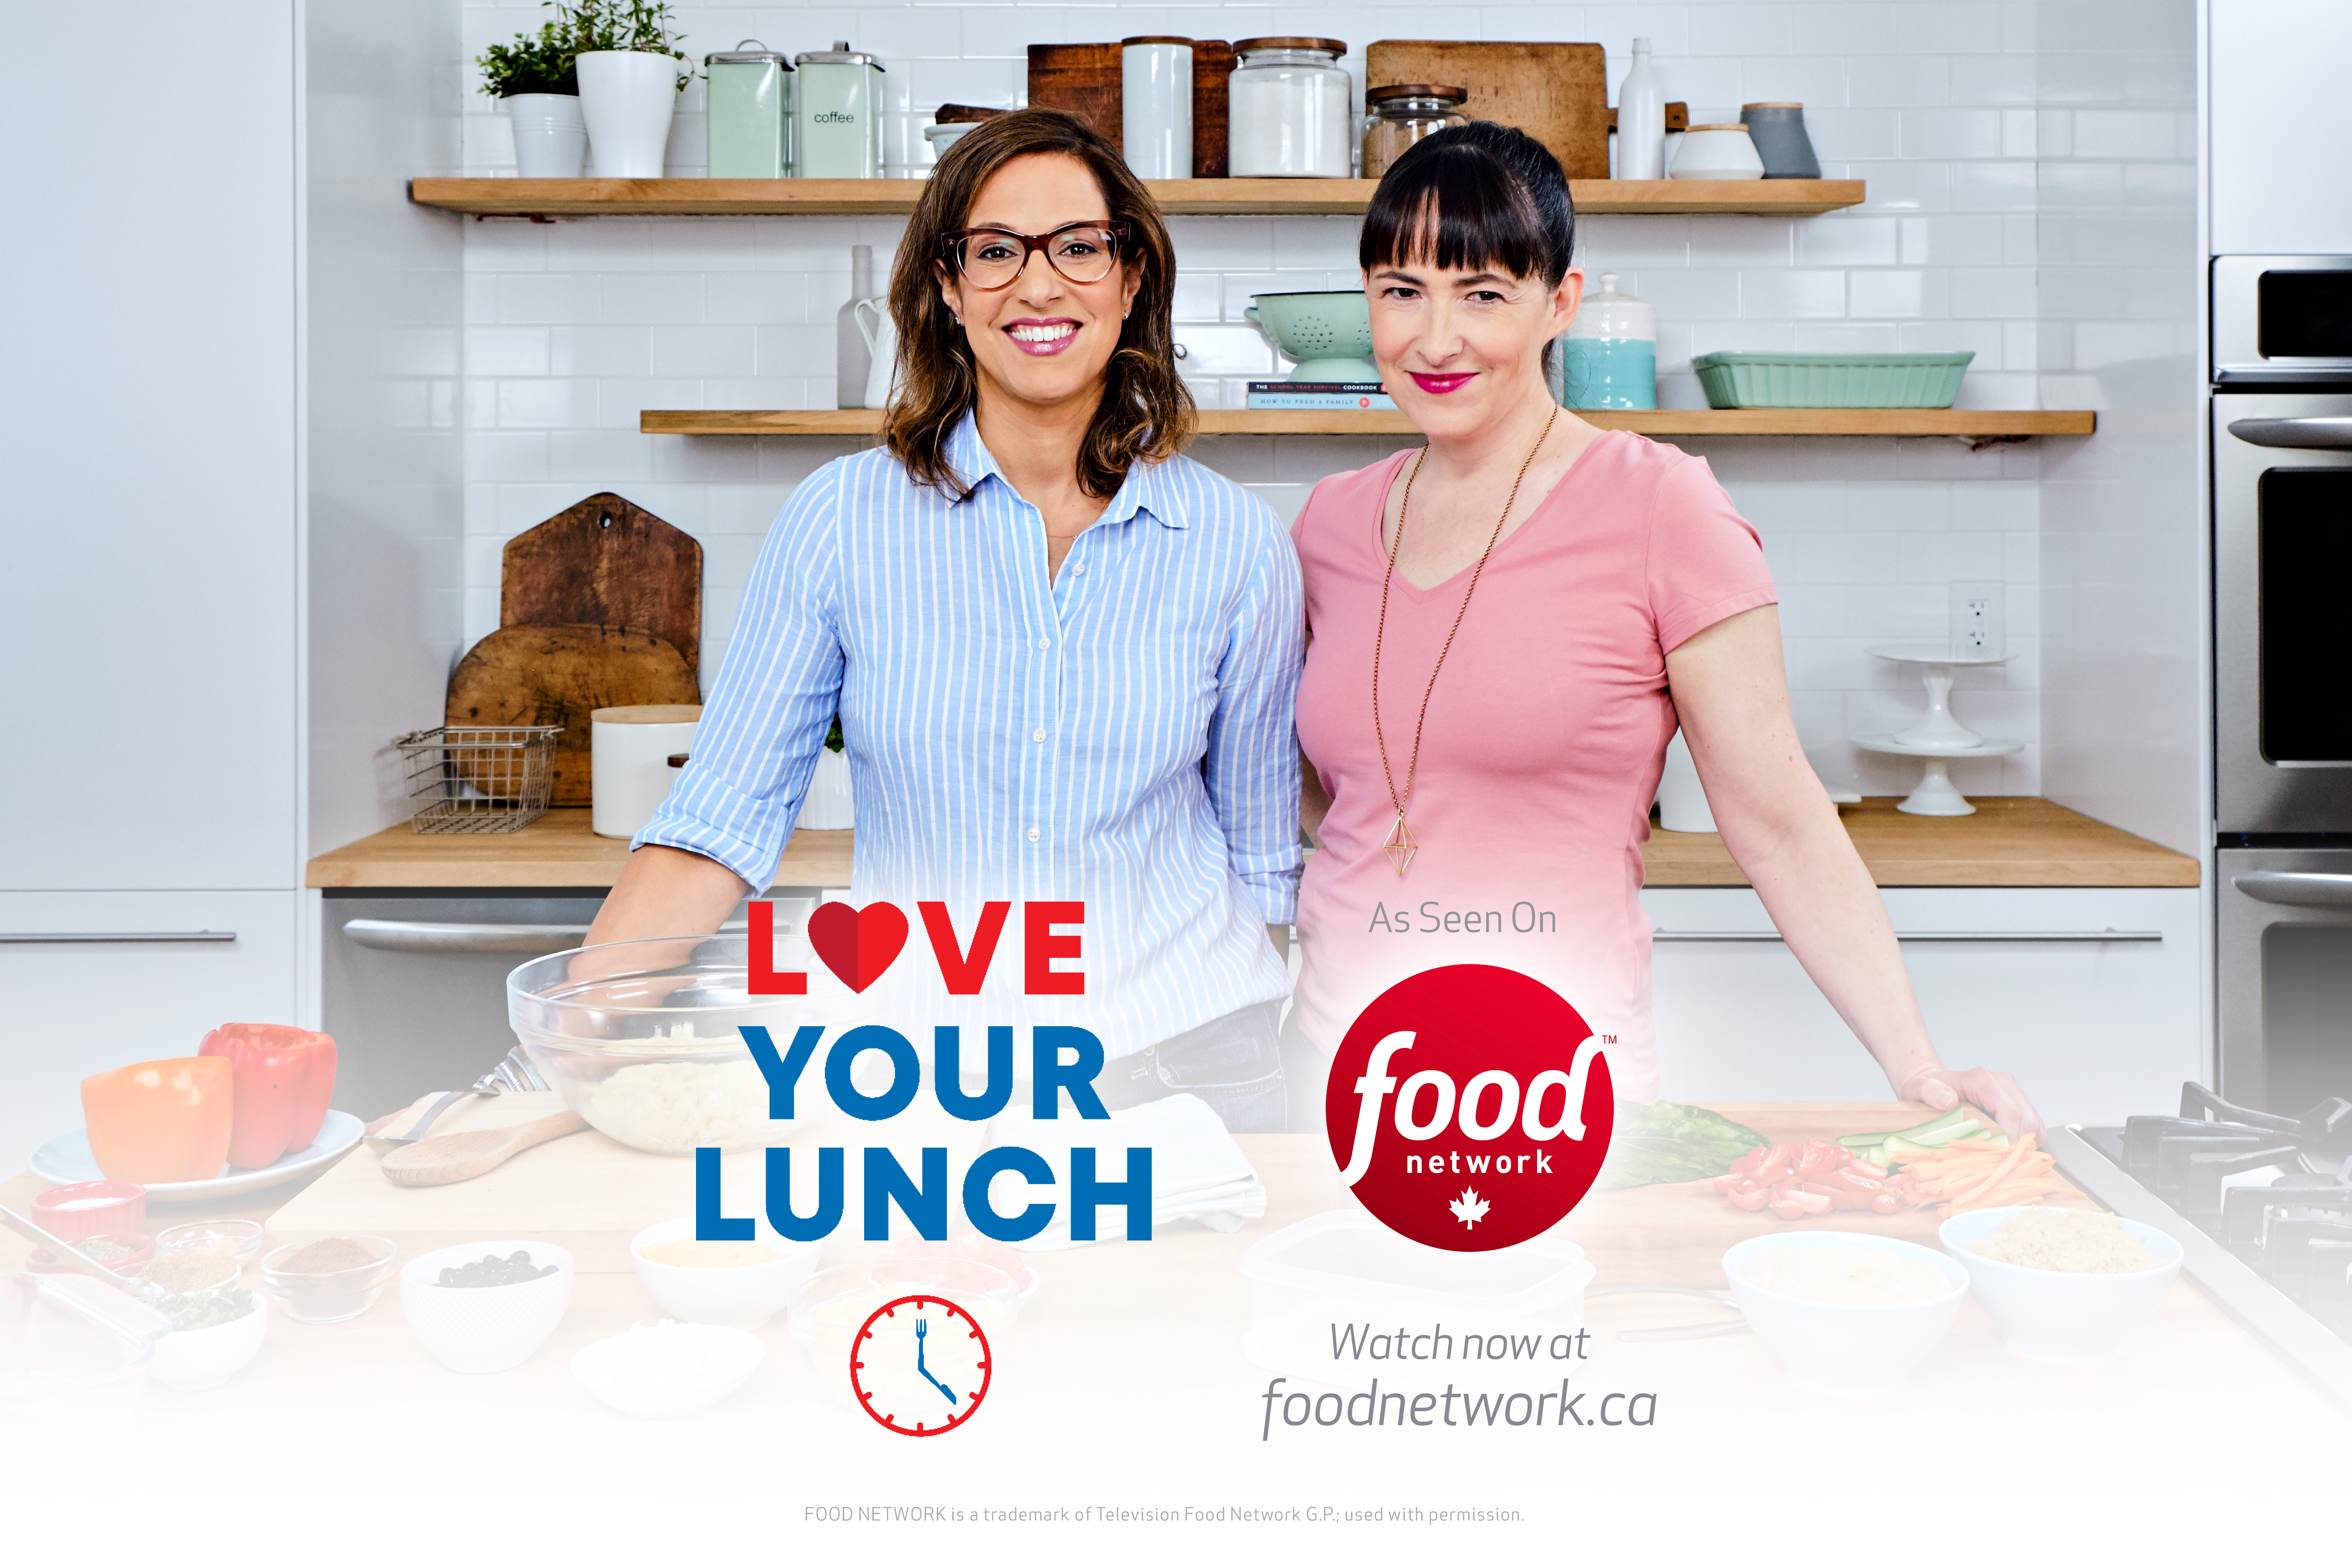 Check Out Love Your Lunch Our New Digital Series On Food Network